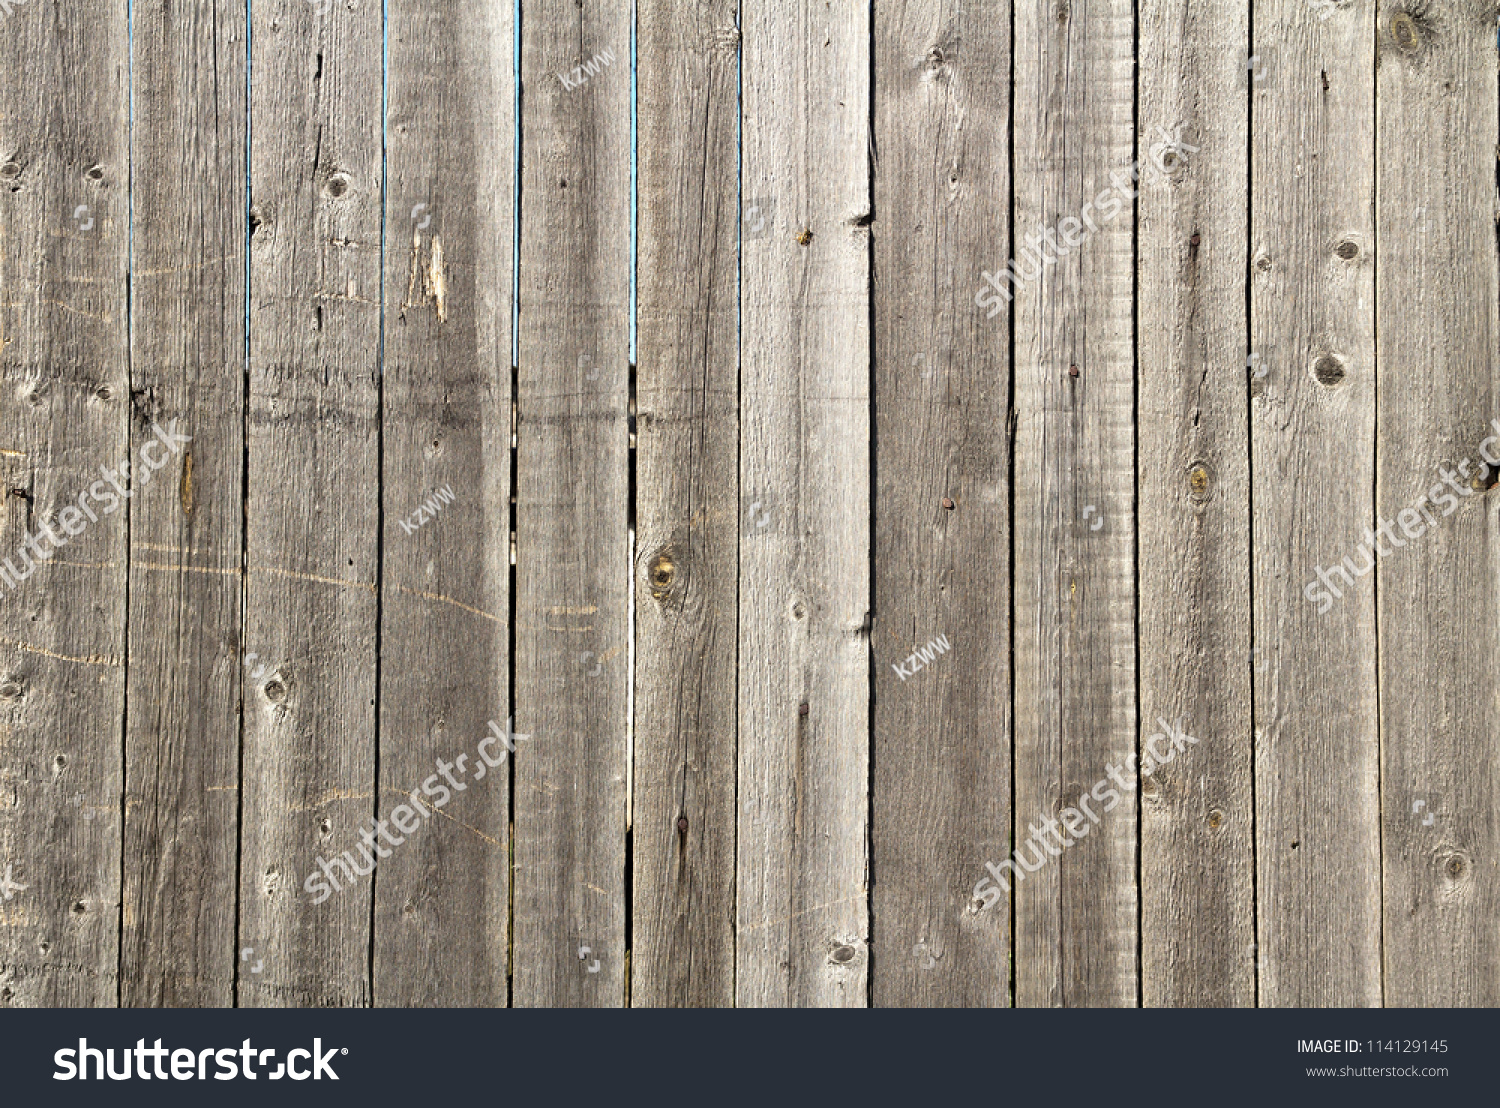 Old barn wood board stock photo 114129145 shutterstock for Where to buy old barn wood